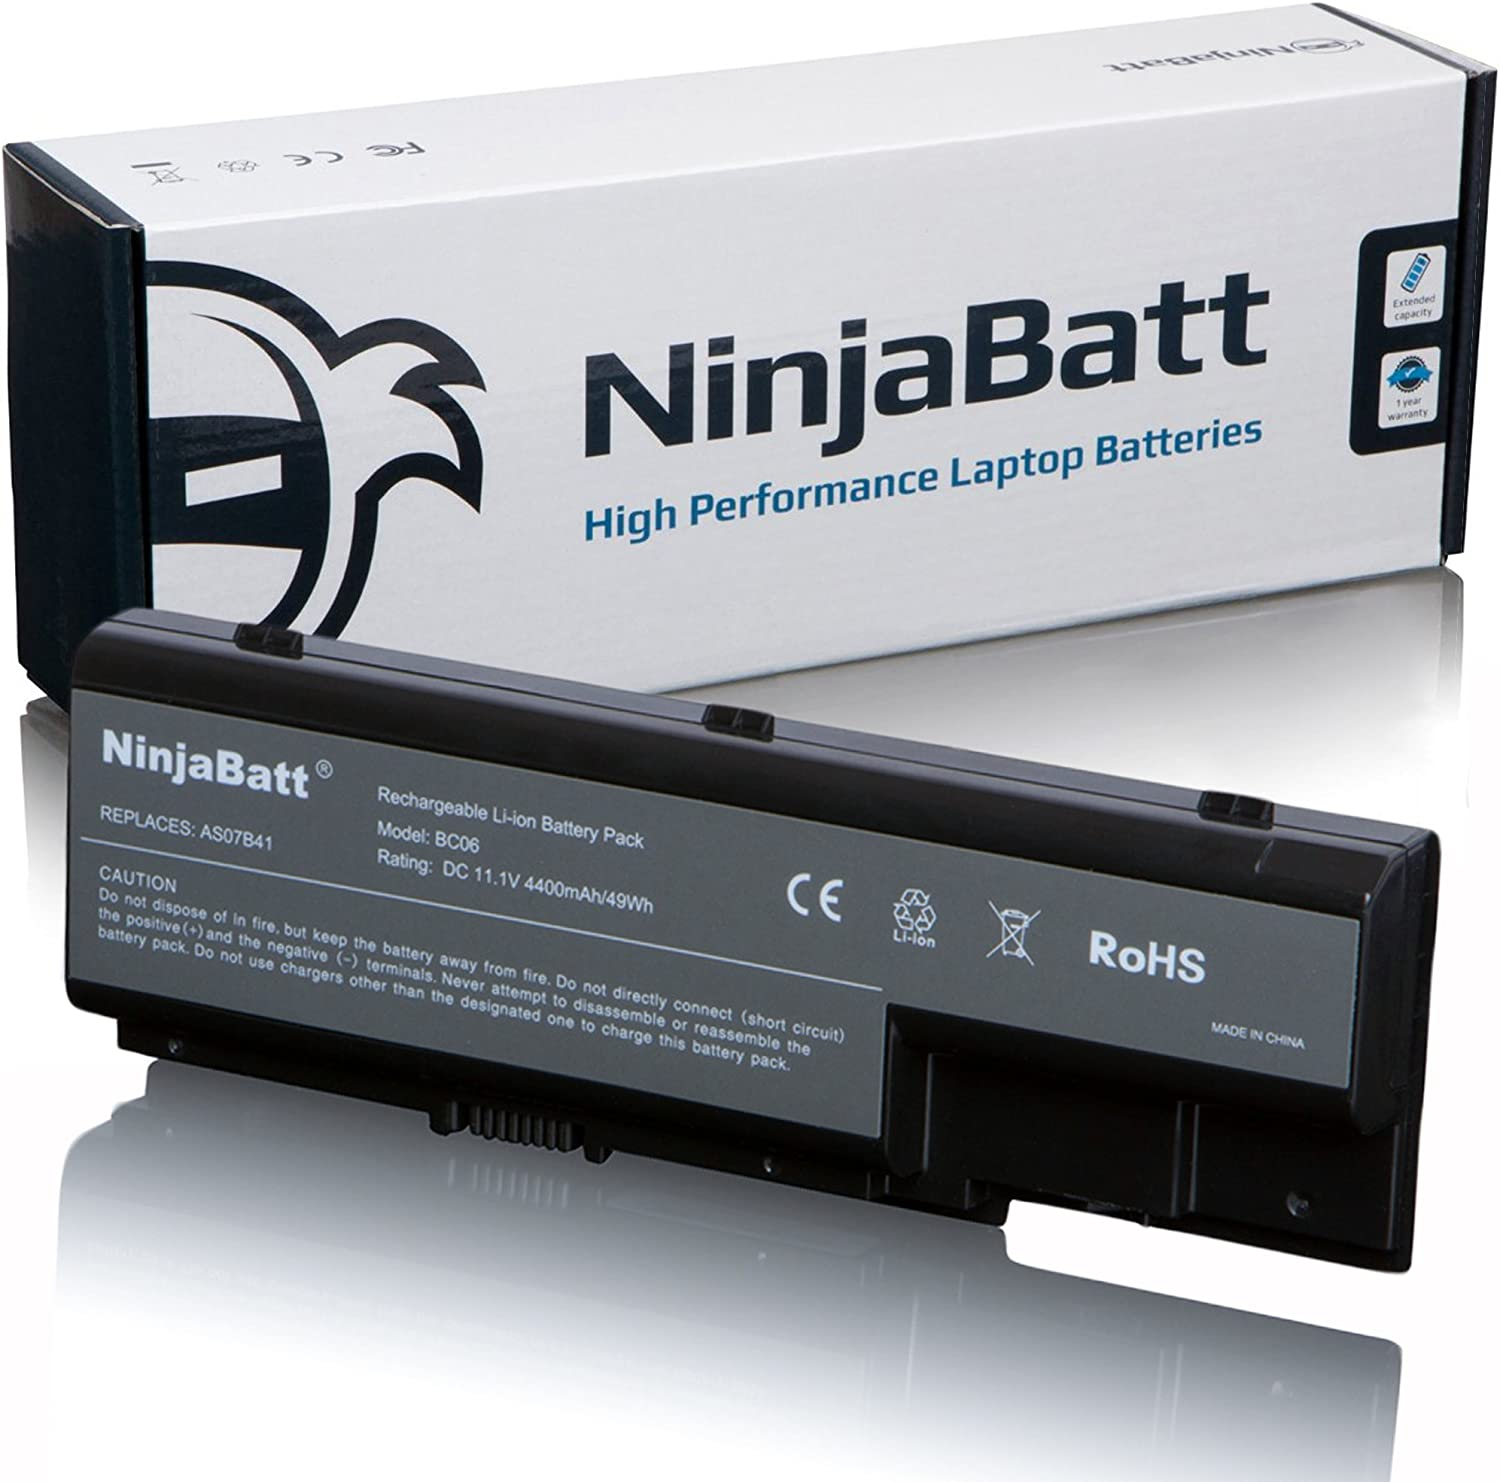 NinjaBatt Laptop Battery AS07B31 For Acer AS07B41 AS07B51 AS07B61 AS07B71 AS07B32 AS07B42 AS07B52 AS07B72 Aspire 7520 5720 5520 5310 7720 5315 Gateway MD2614u MD7818u MD2601u - [6 Cells/4400mAh/11.1V]